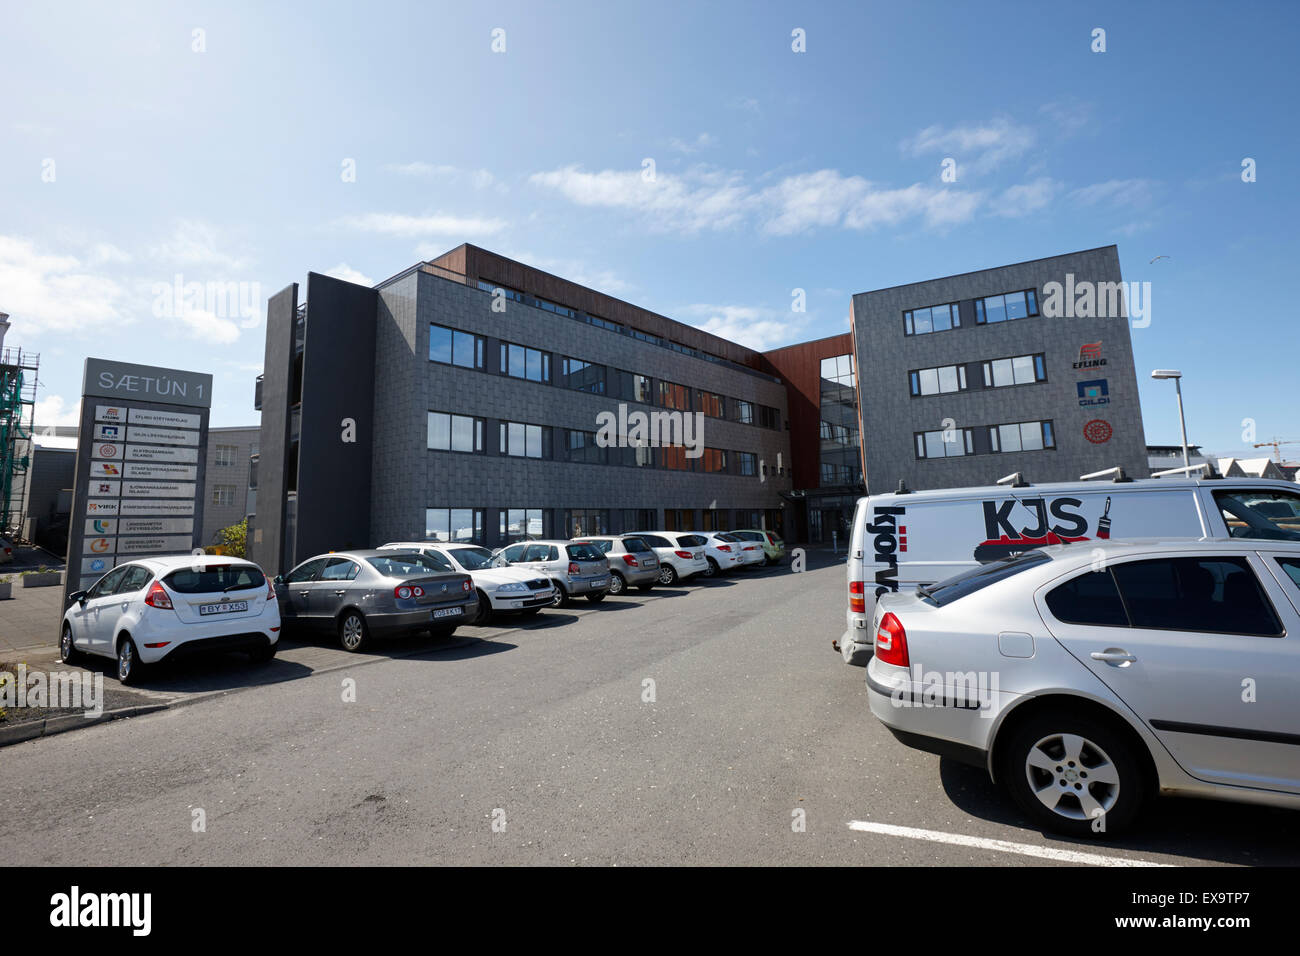 Sætun 1 saetun offices of various unions and trade associations reykjavik iceland - Stock Image